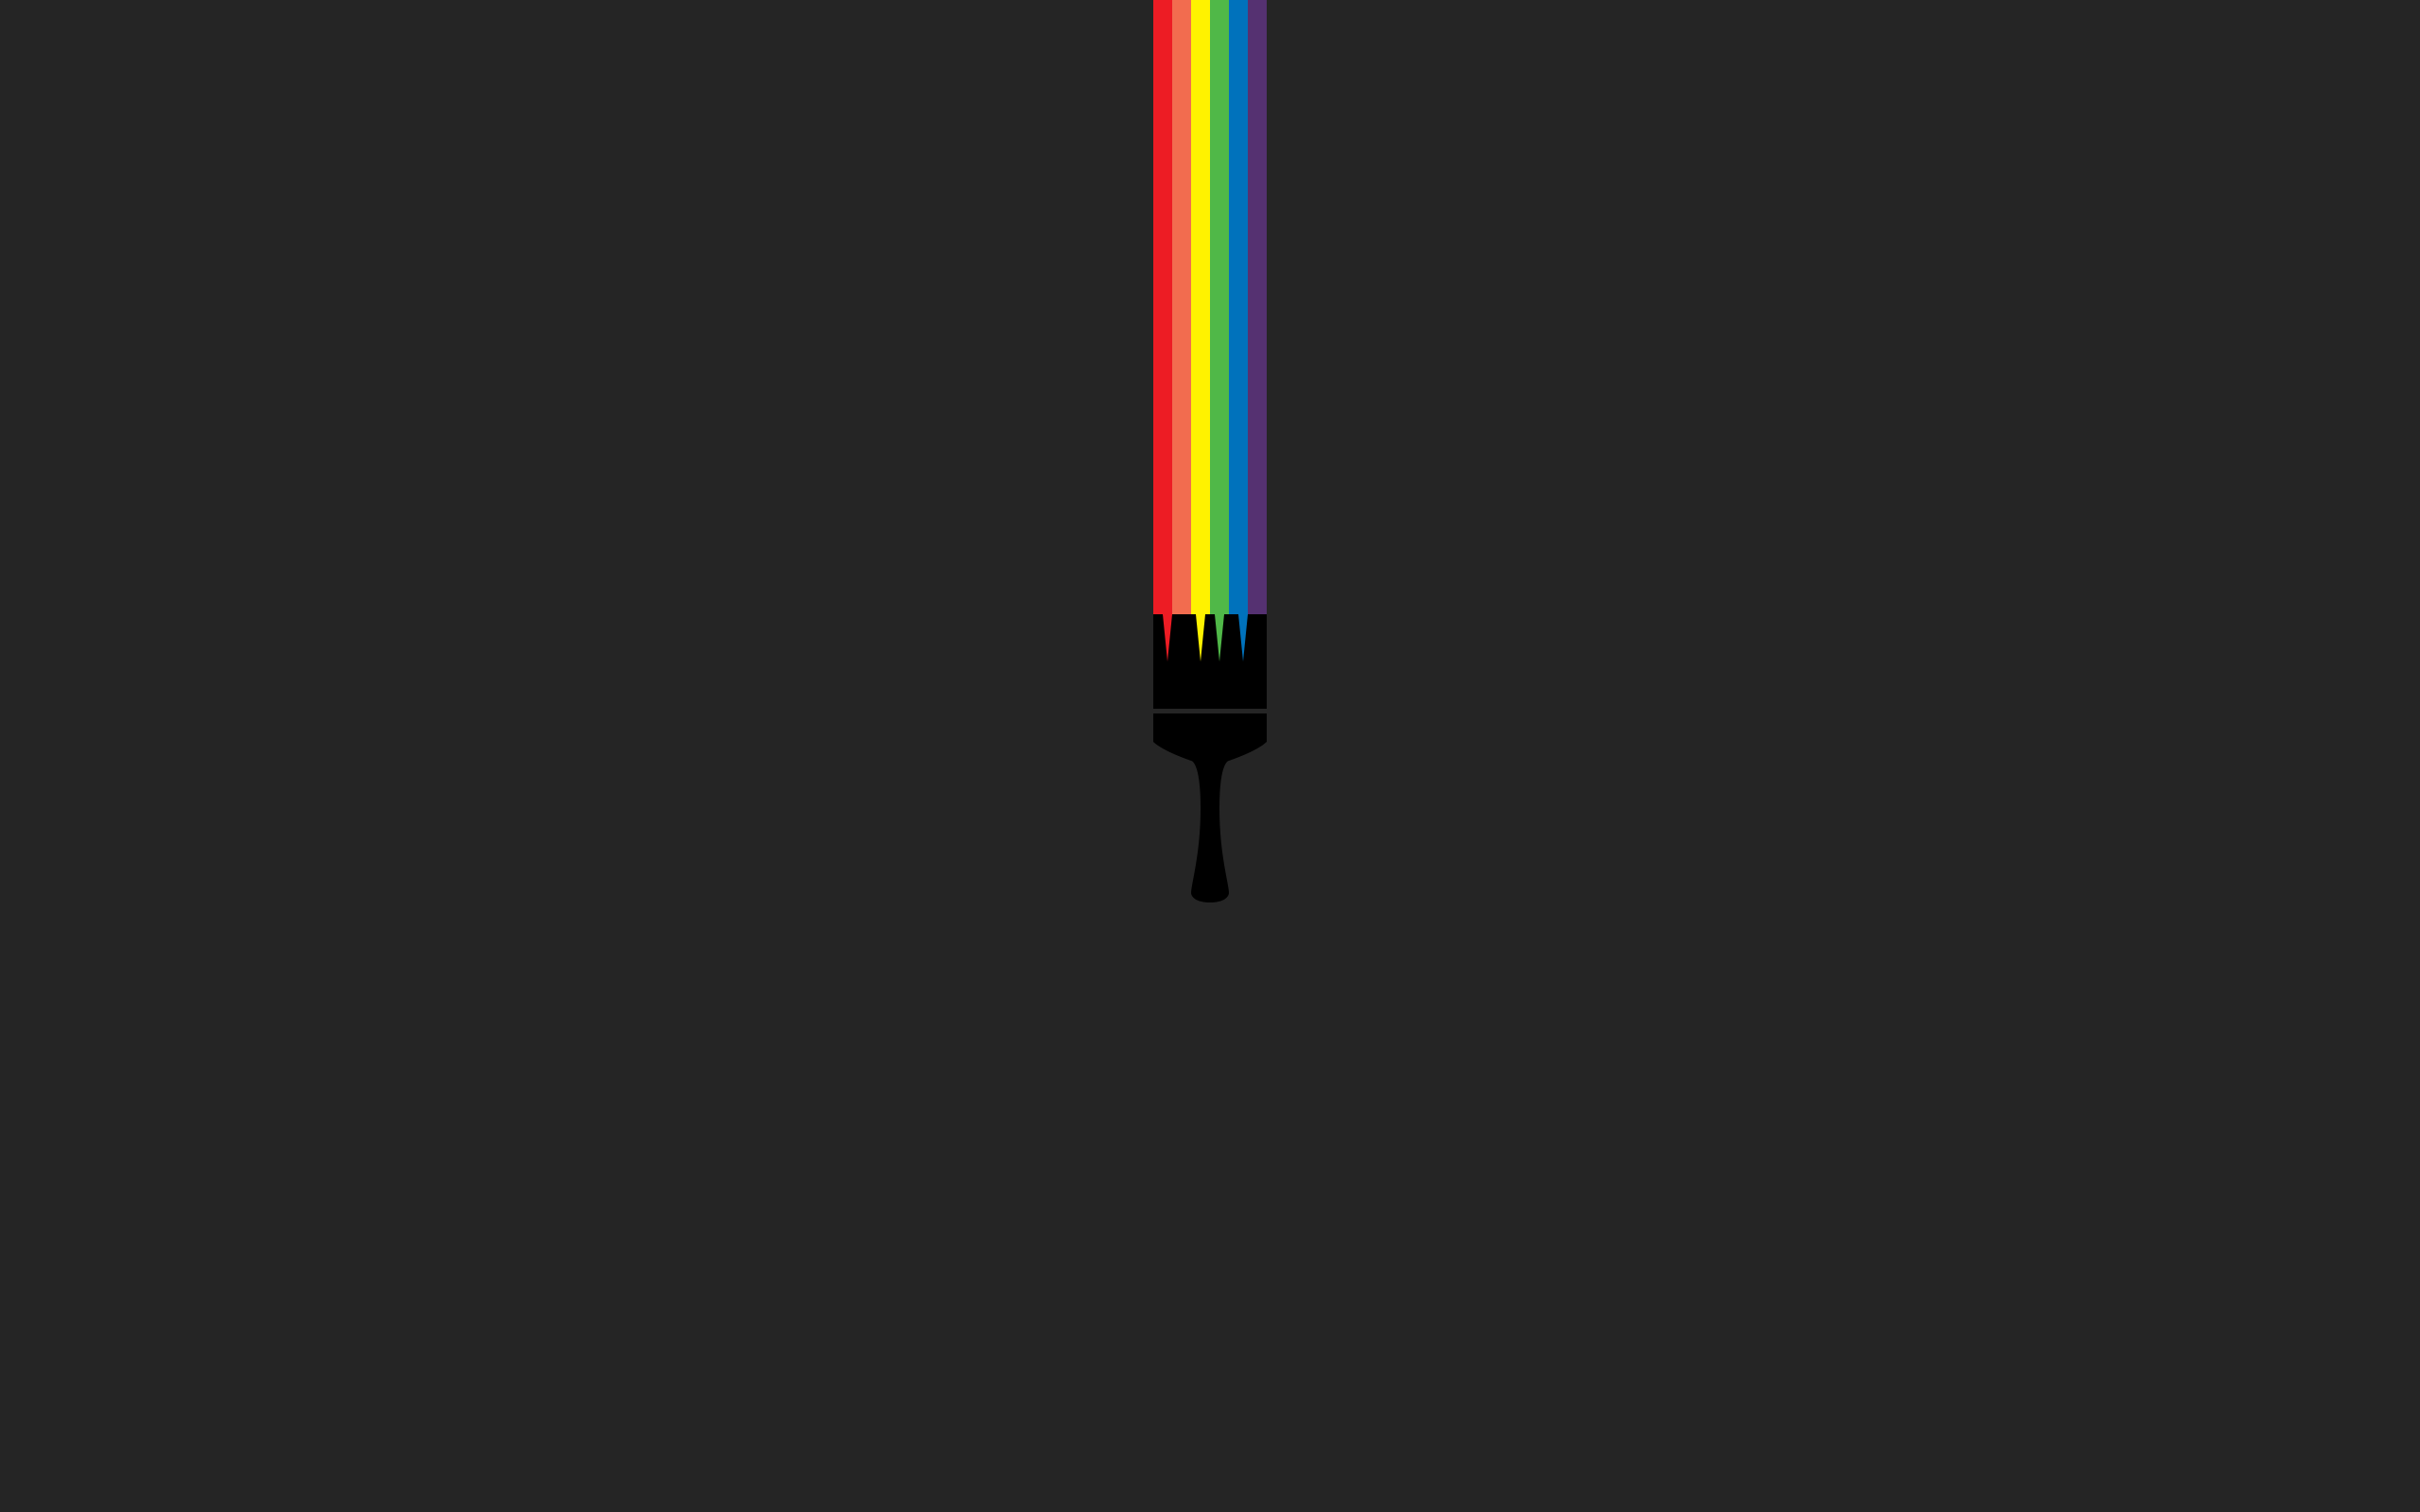 Aesthetic Minimalist Rainbow Wallpaper